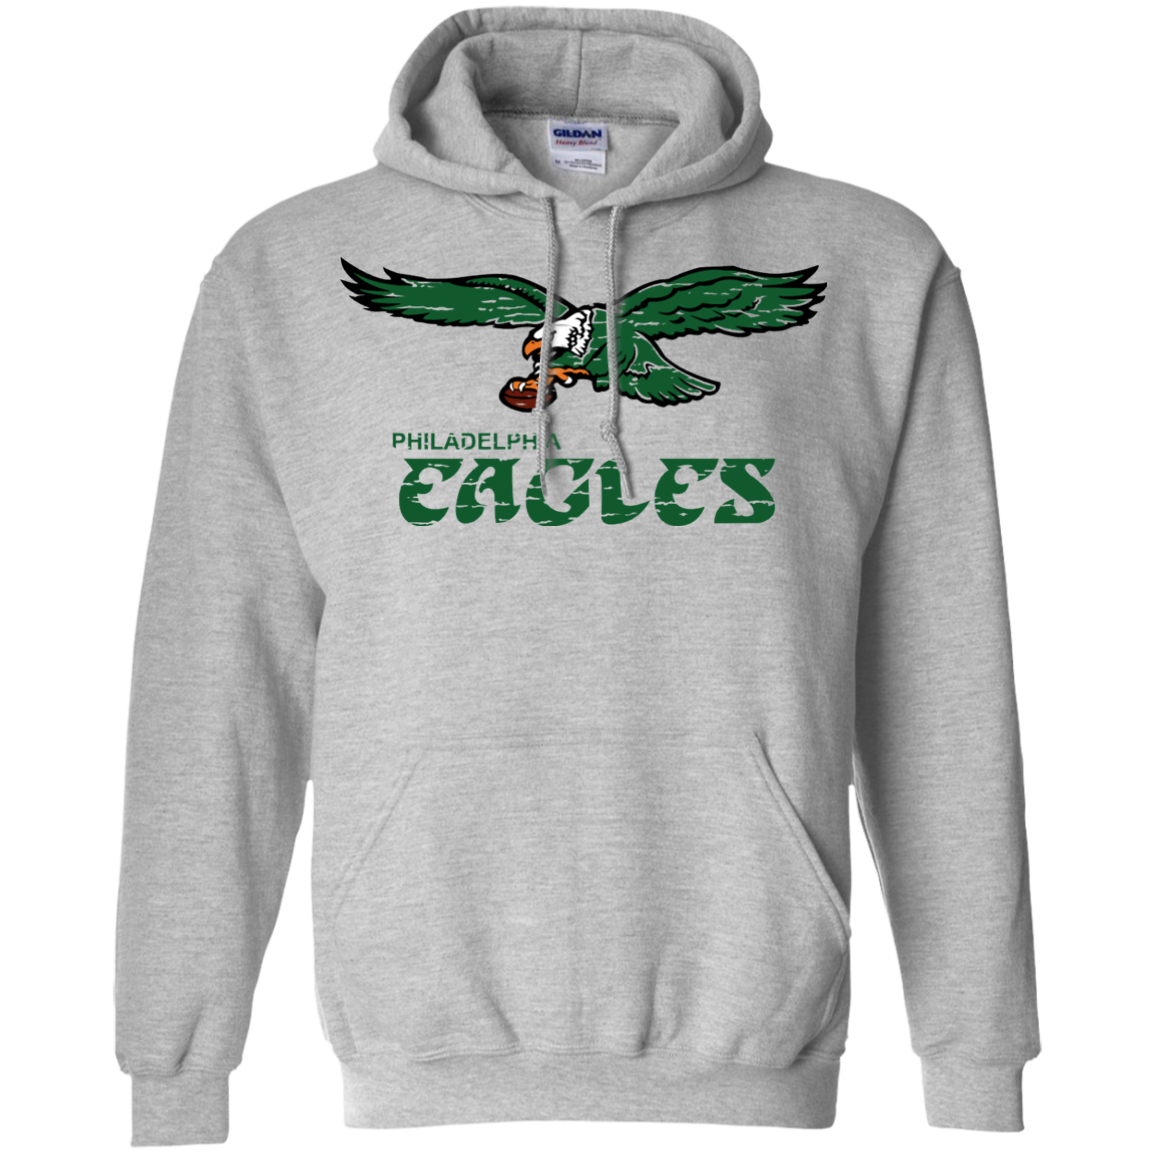 Retro Philadelphia Eagles Inspired Pullover Hoodie